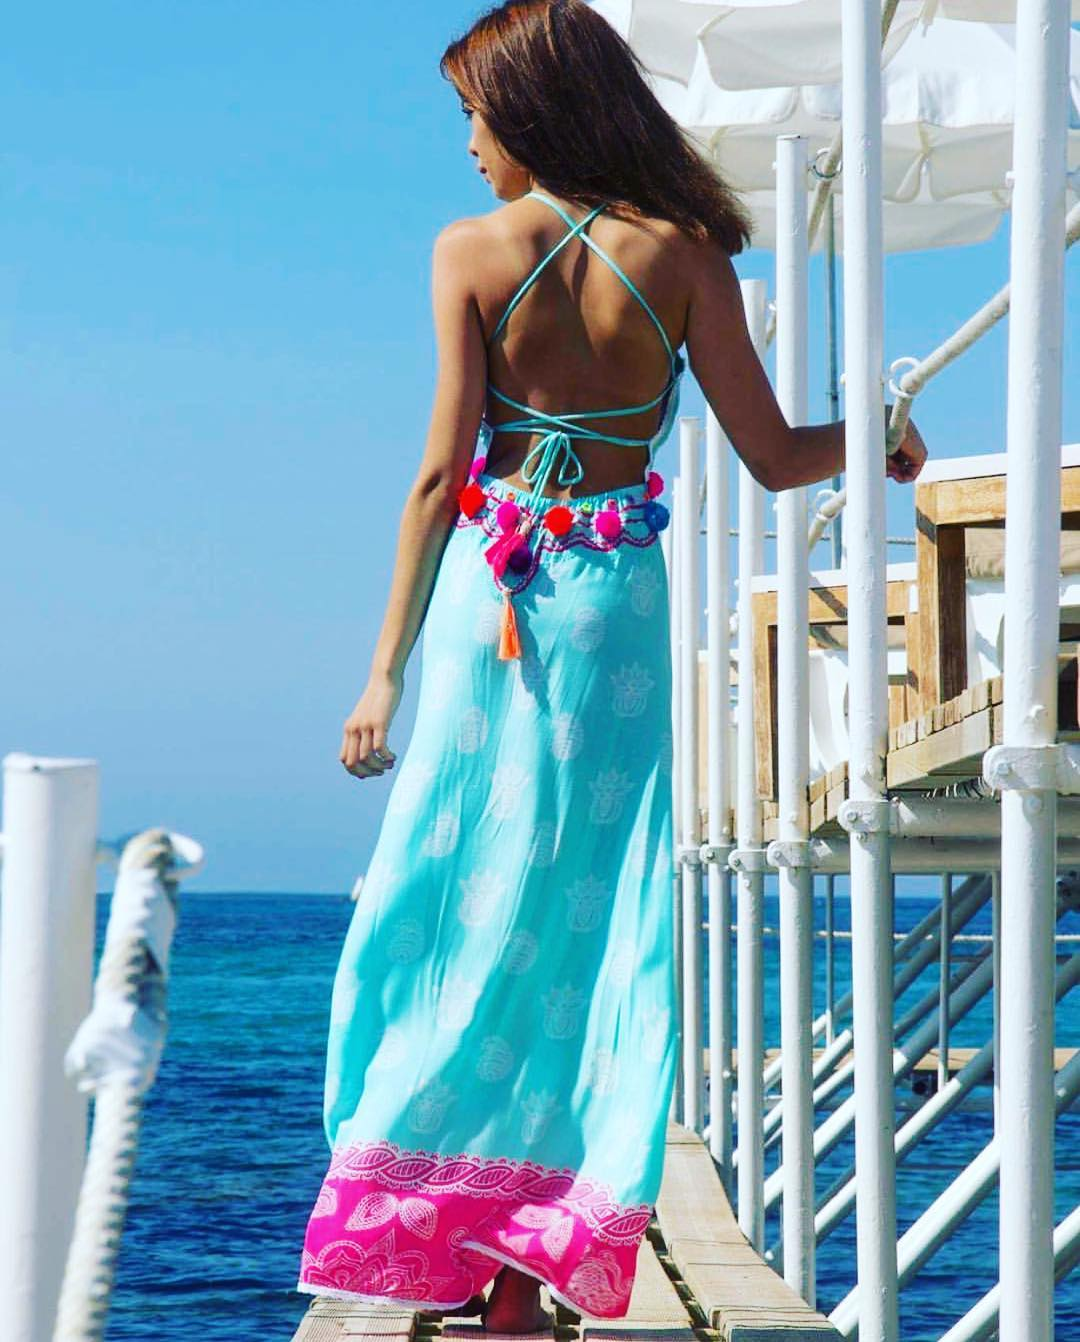 Turquoise dress worn by the sea